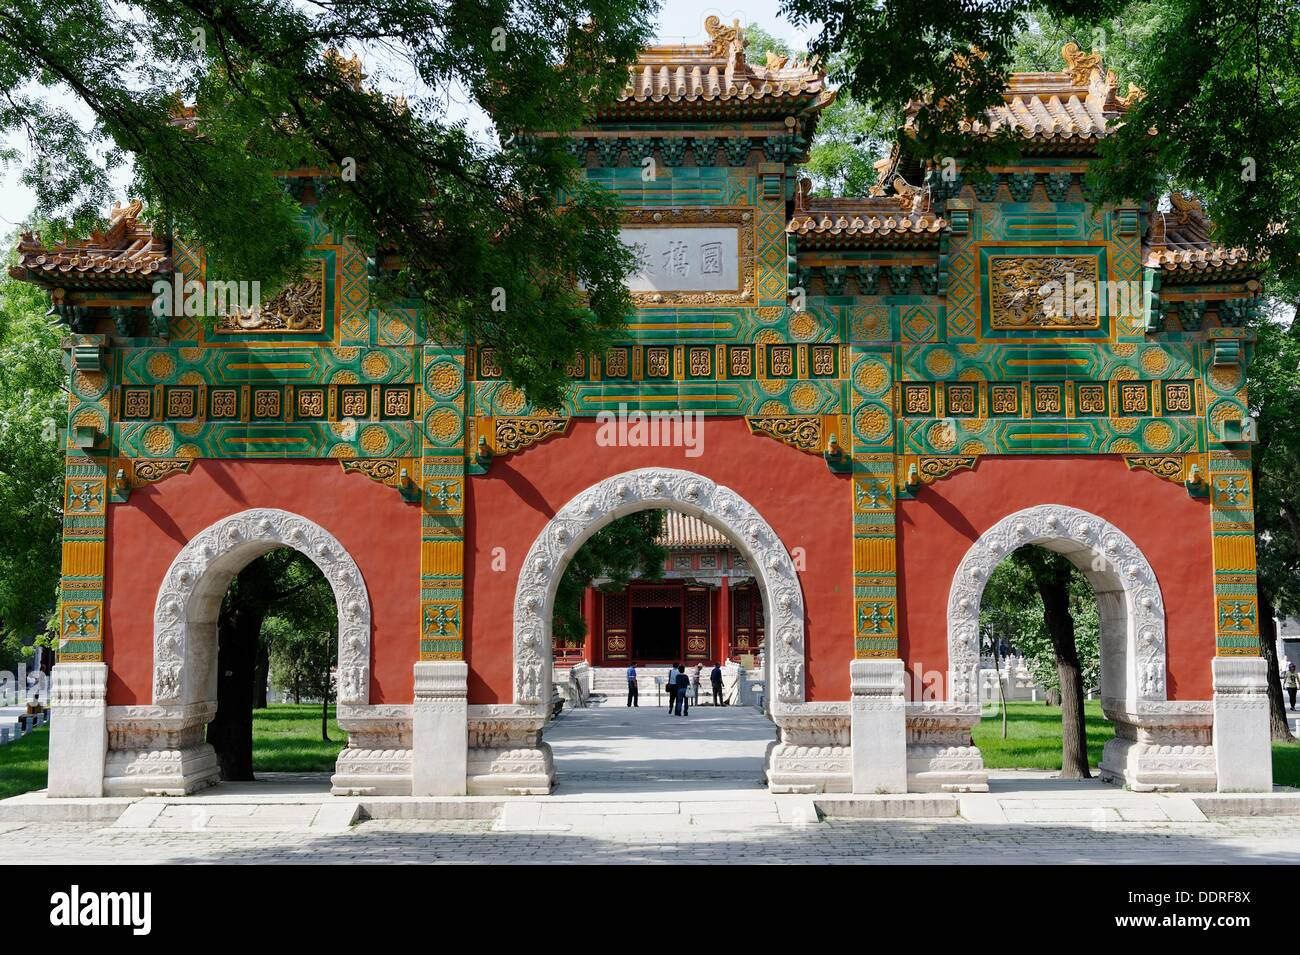 Main gate, Temple of Conficius built in 1302, Beijing, China - Stock Image